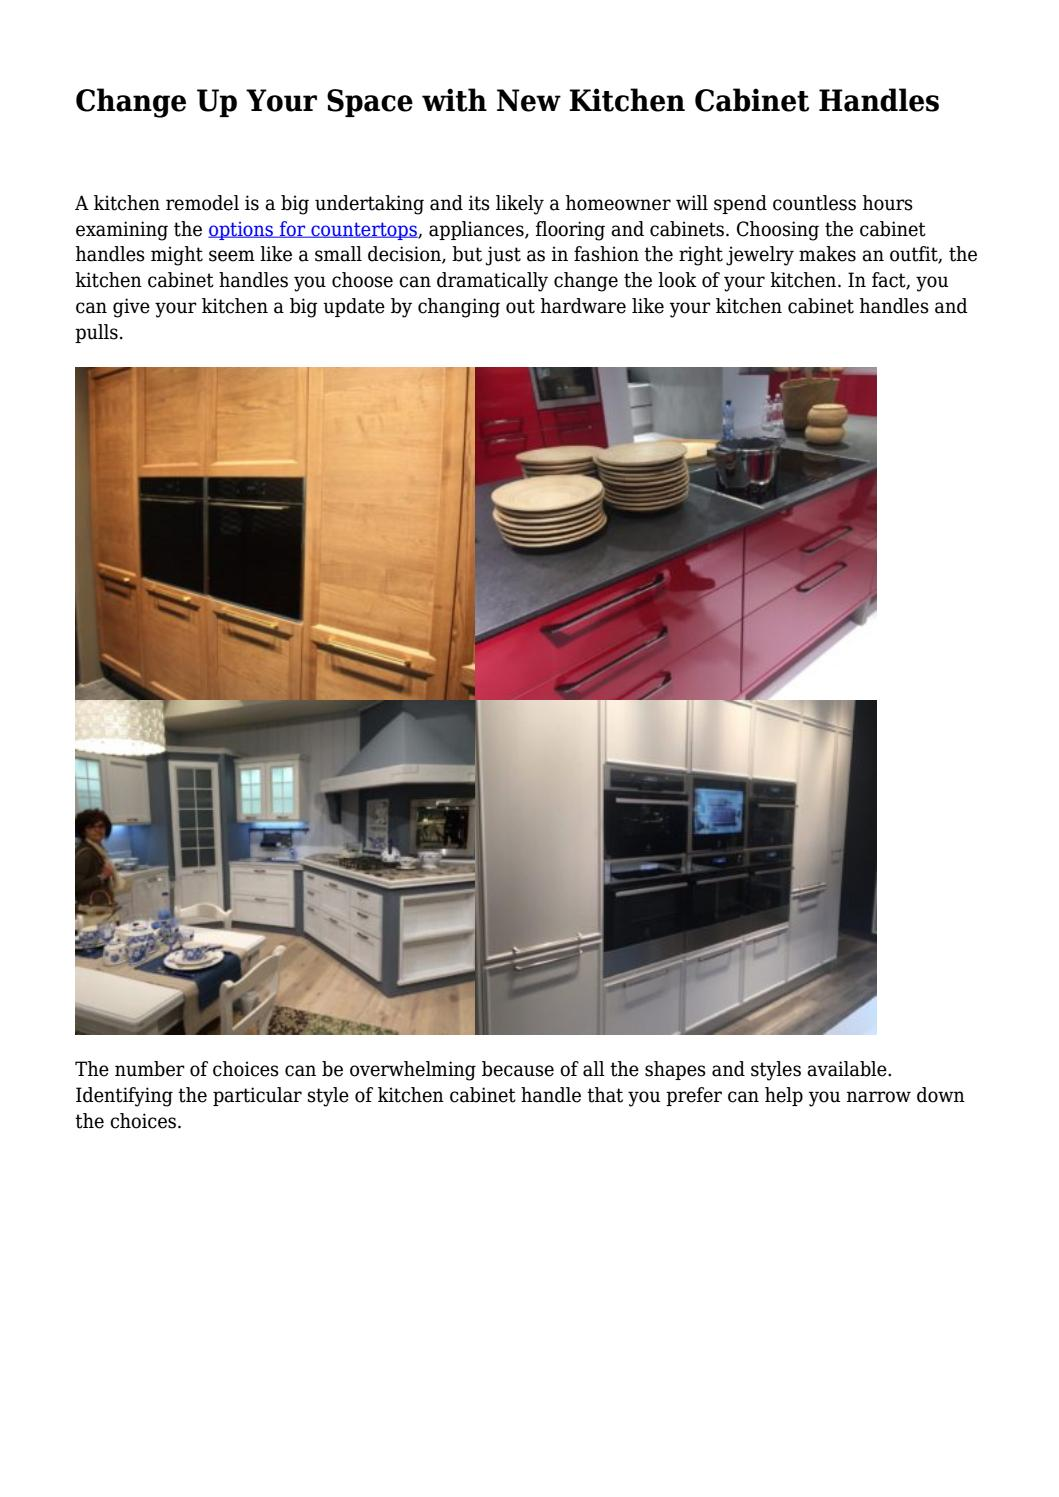 Change Up Your Space With New Kitchen Cabinet Handles By